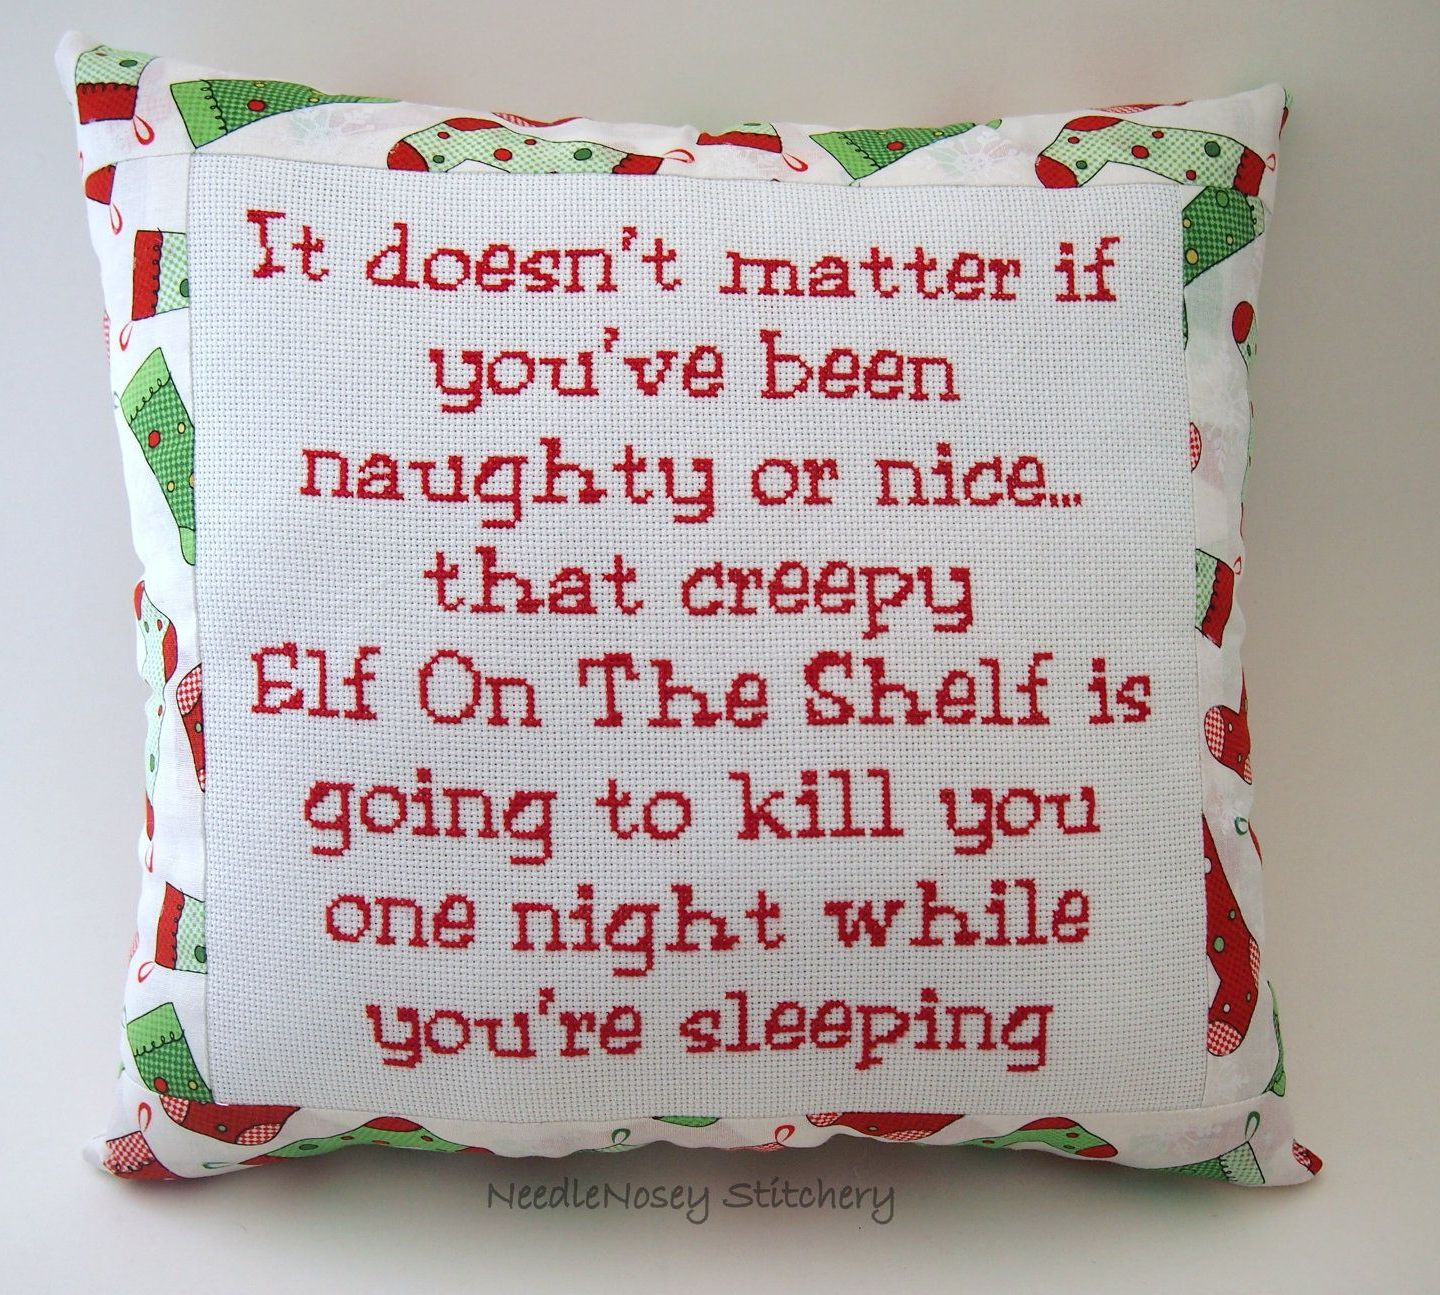 Funny Cross Stitch Christmas Pillow